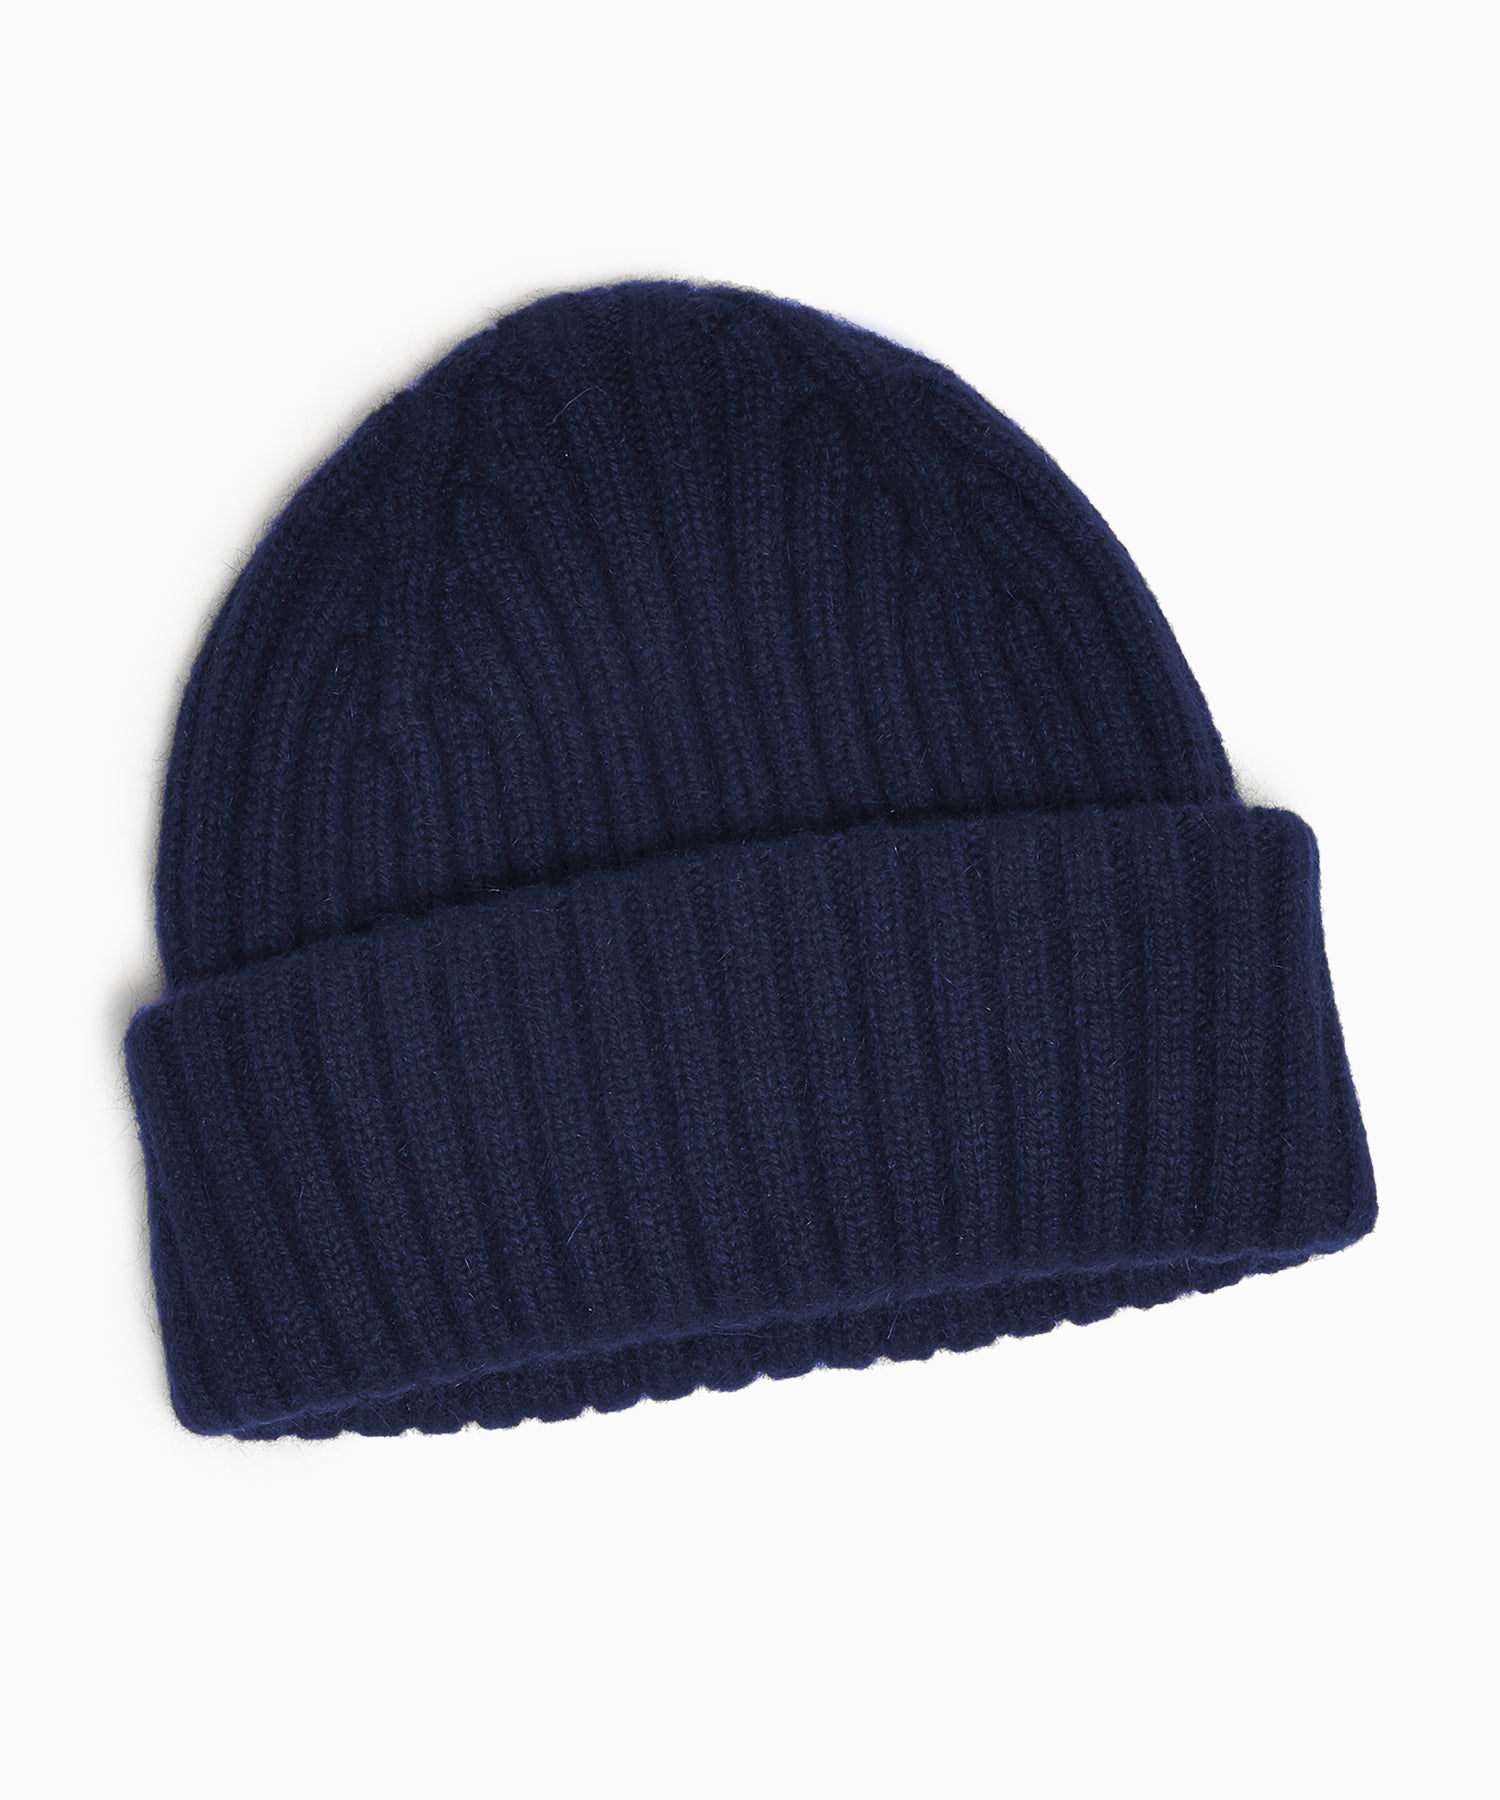 Drakes Lambswool Angora Rib Hat in Navy